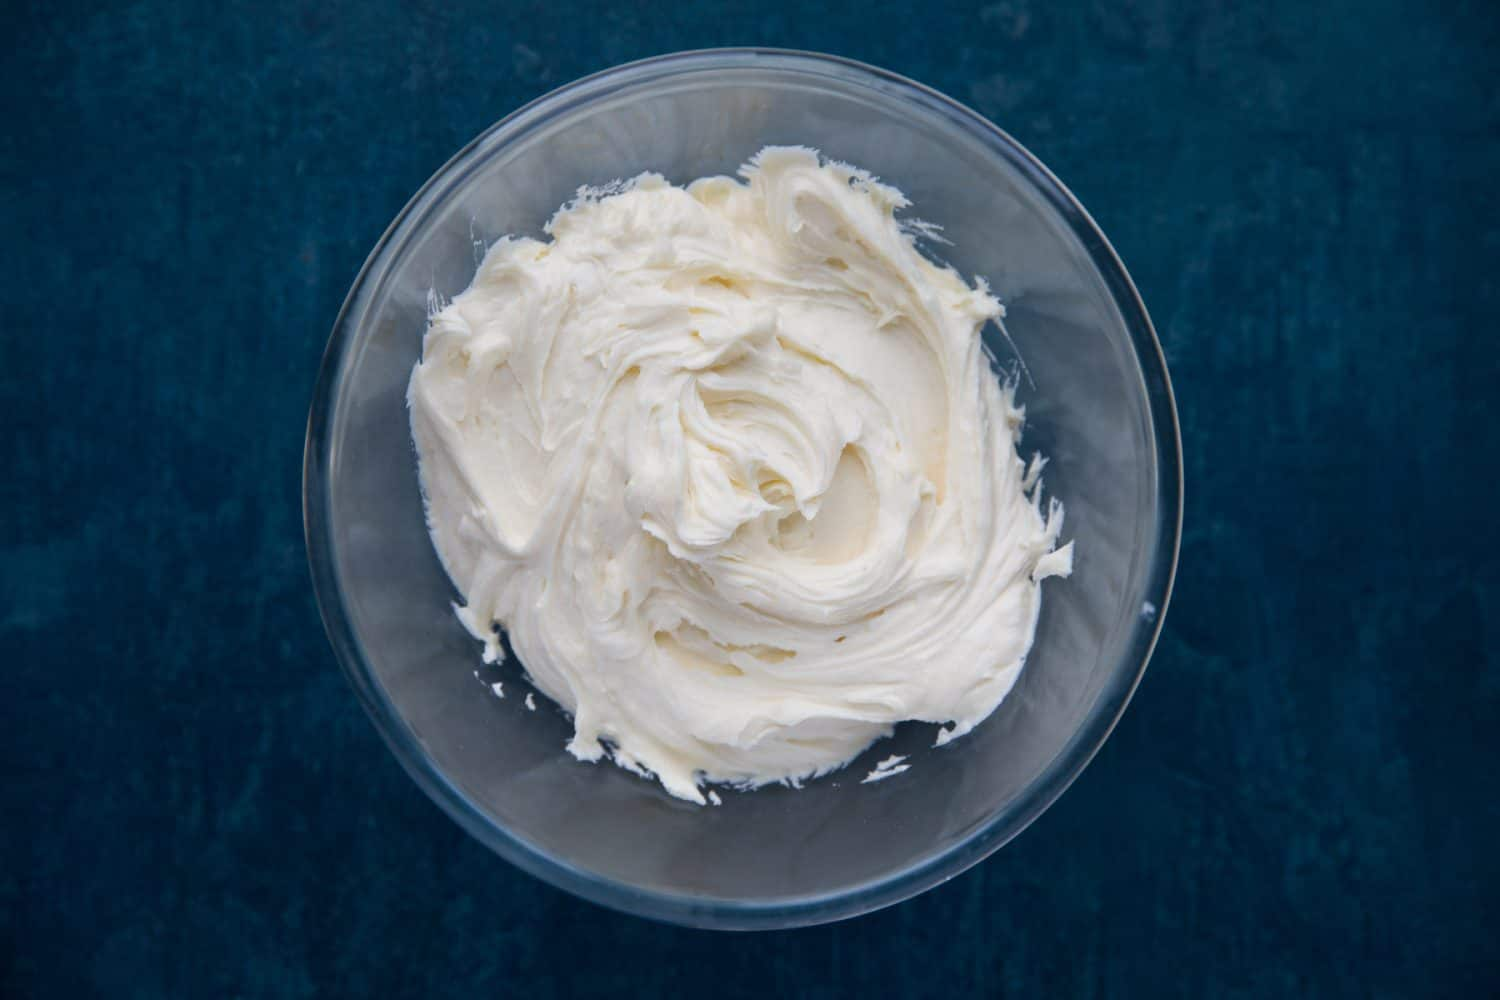 A bowl full of white chocolate buttercream frosting.